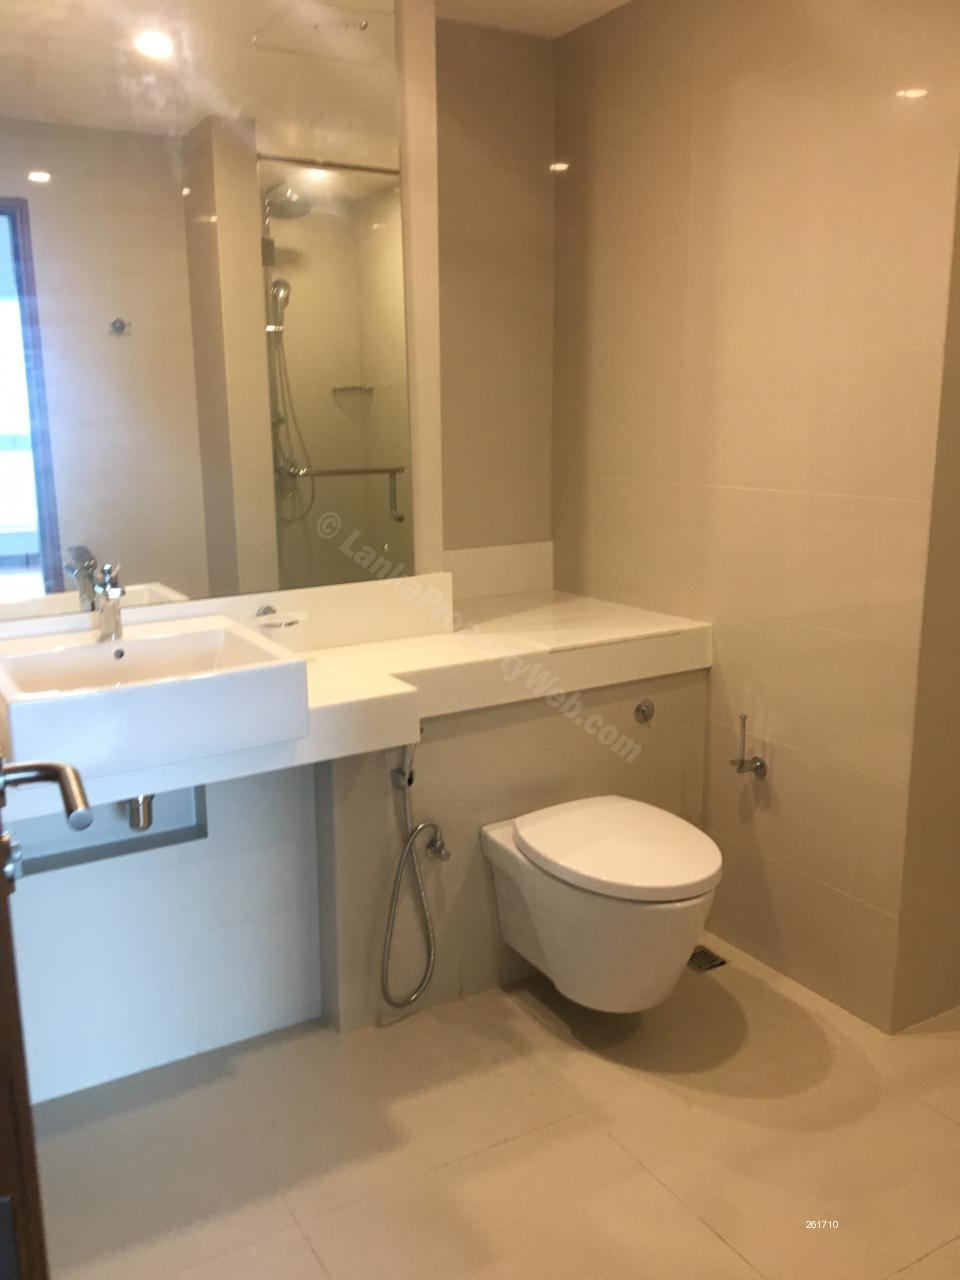 Washroom - Apartment for Sale at Elements by Fairway